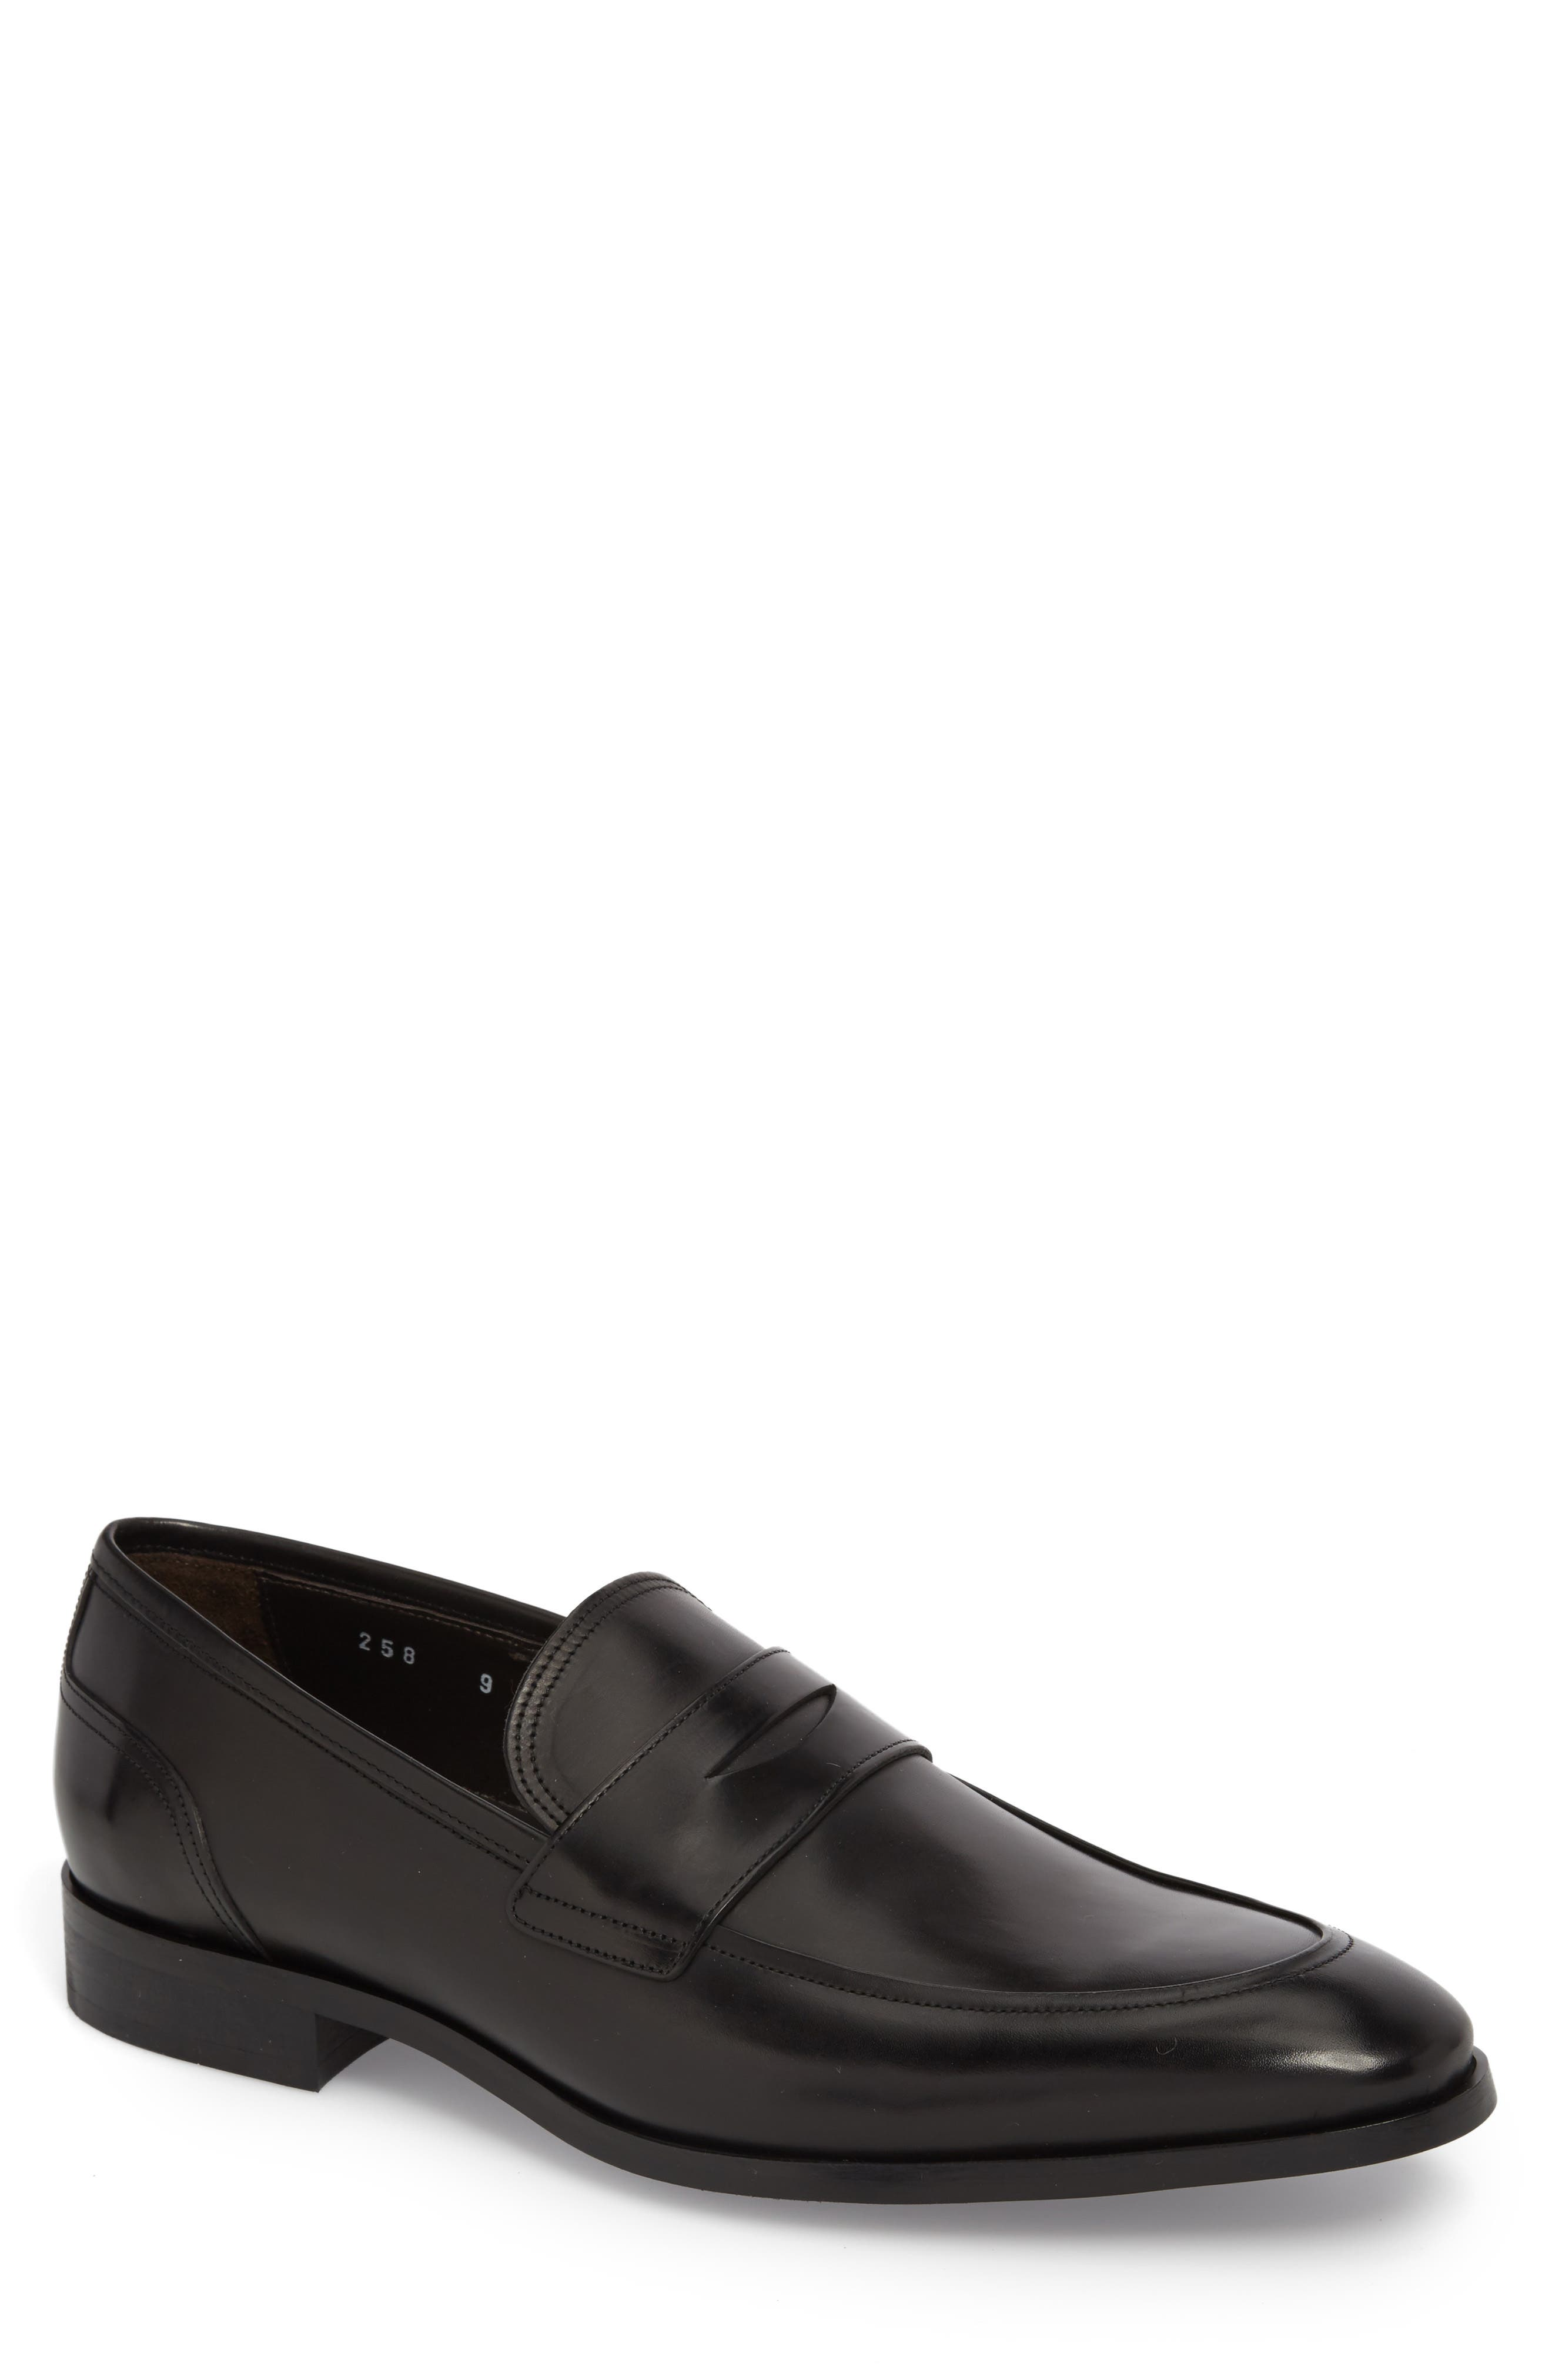 To Boot New York Deane Penny Loafer- Black